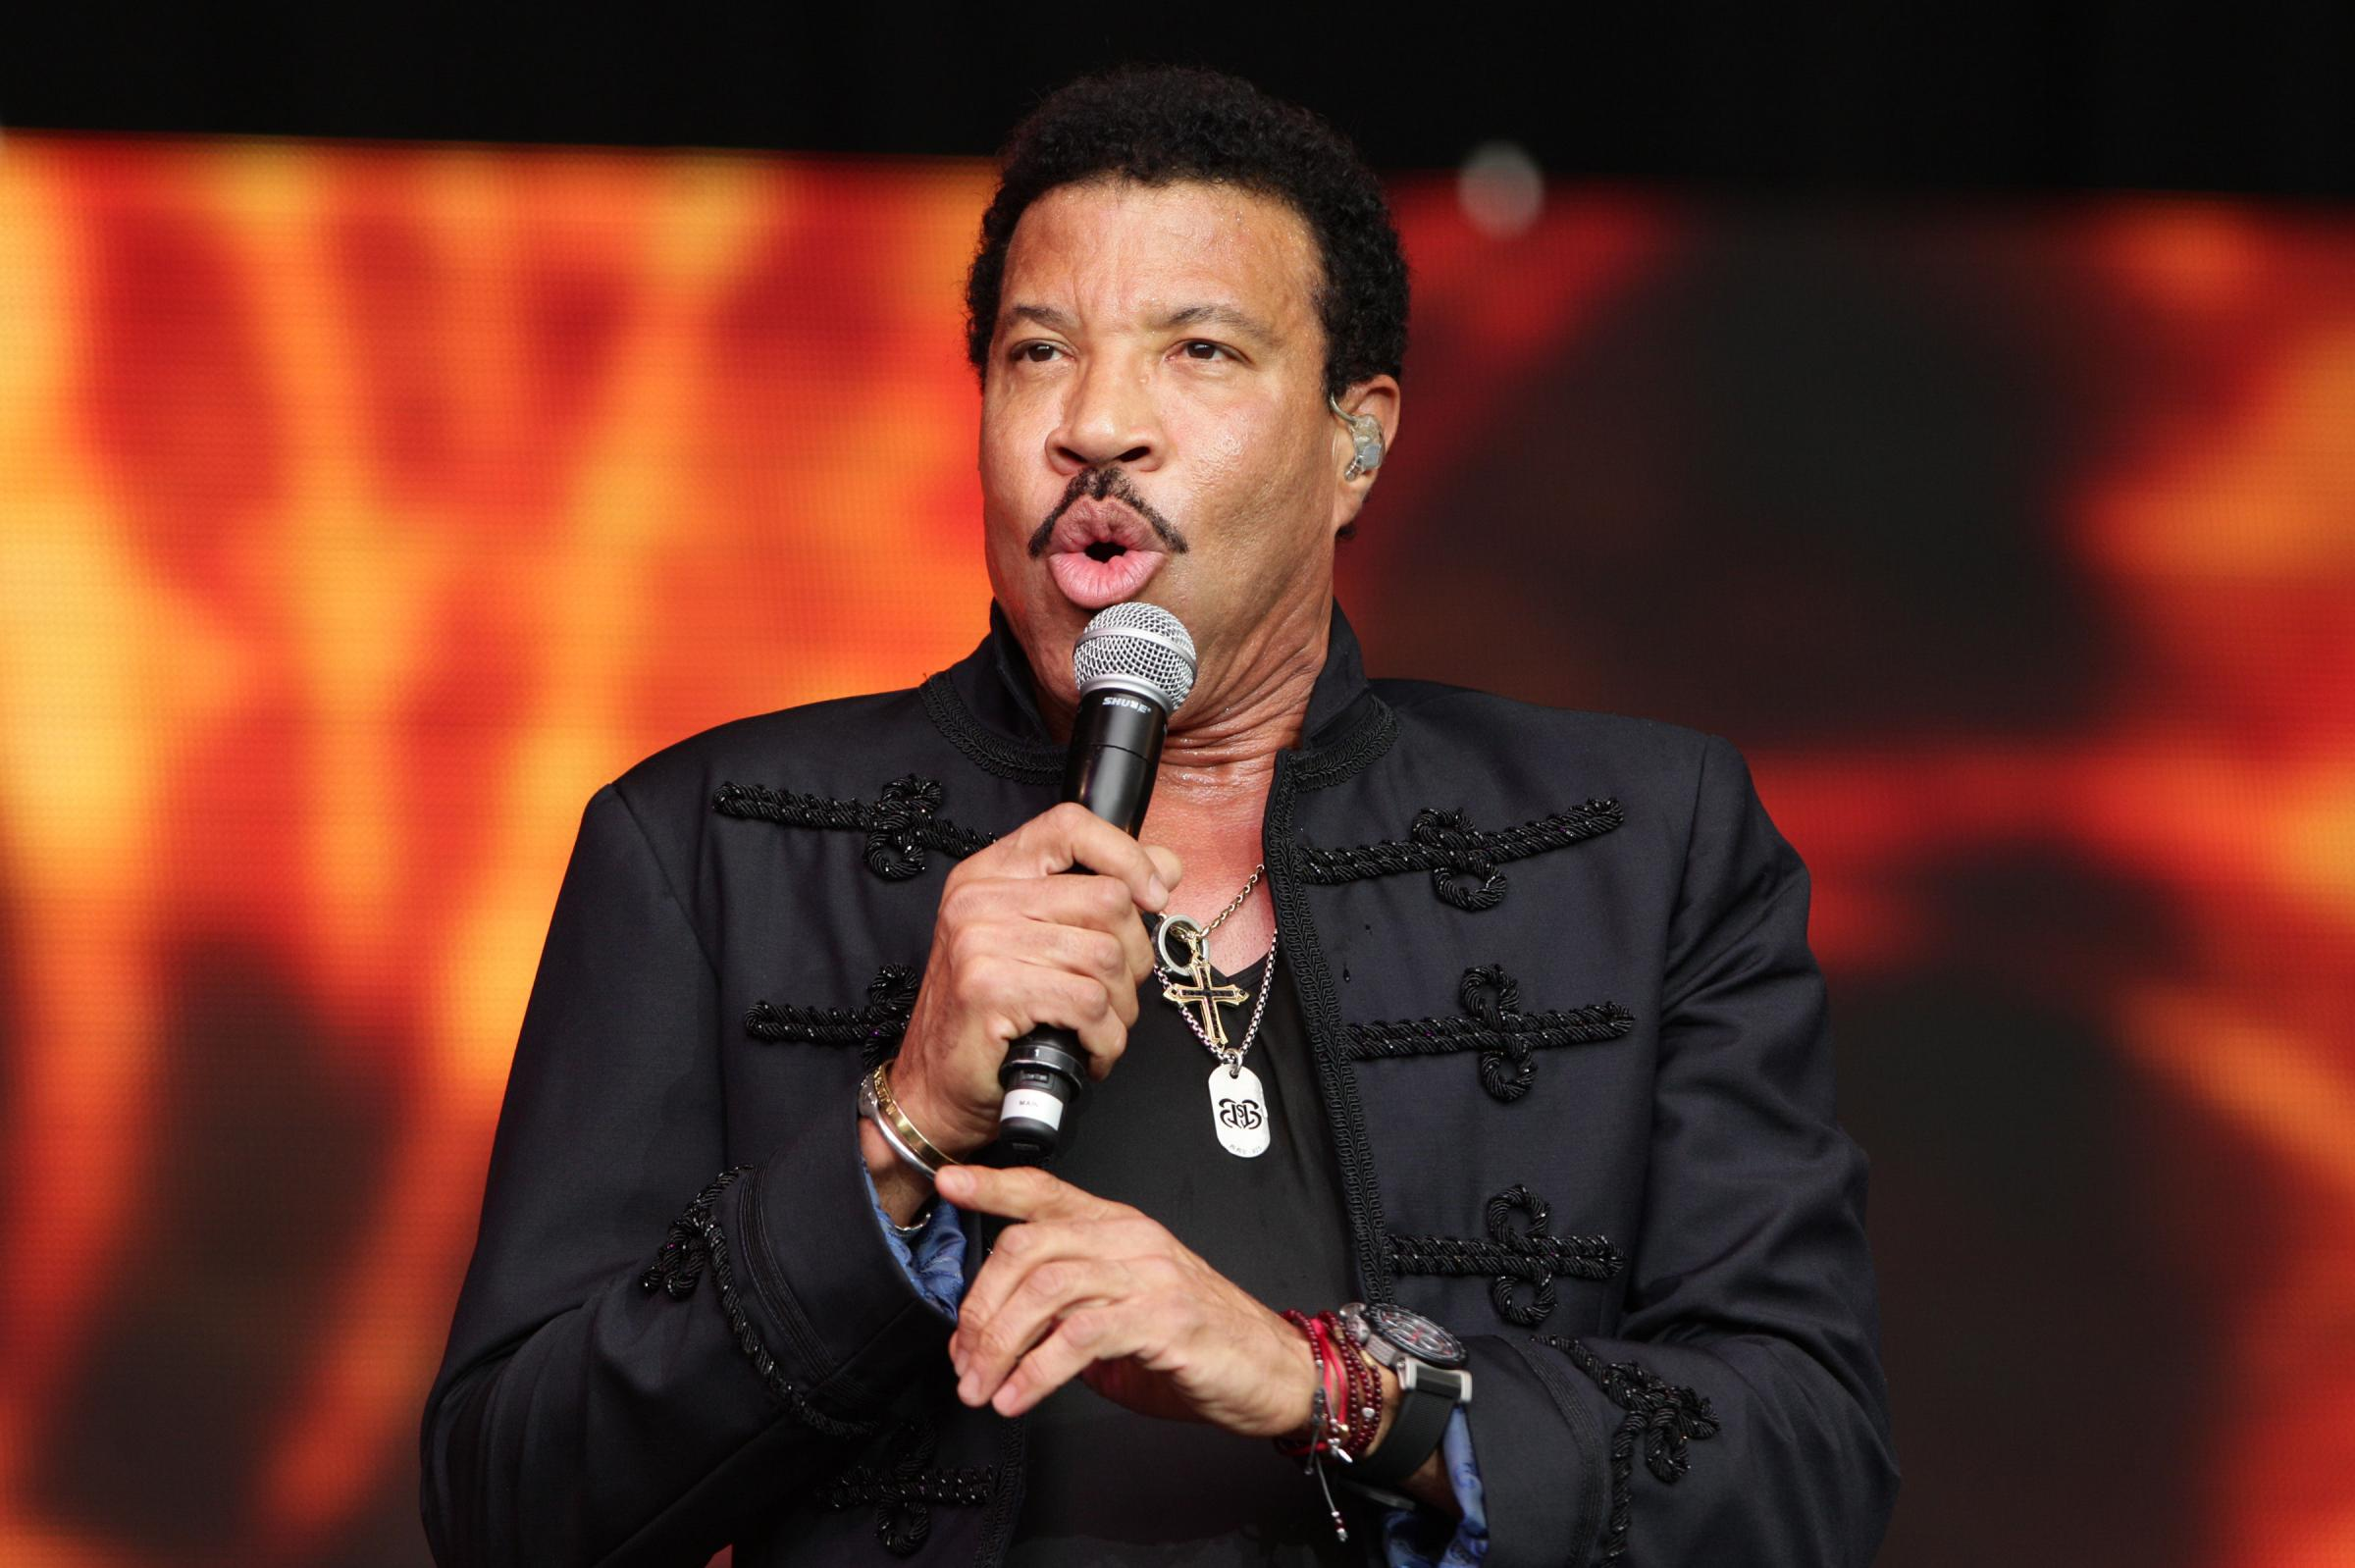 US star Lionel Richie to perform in Shropshire, here's how to get tickets